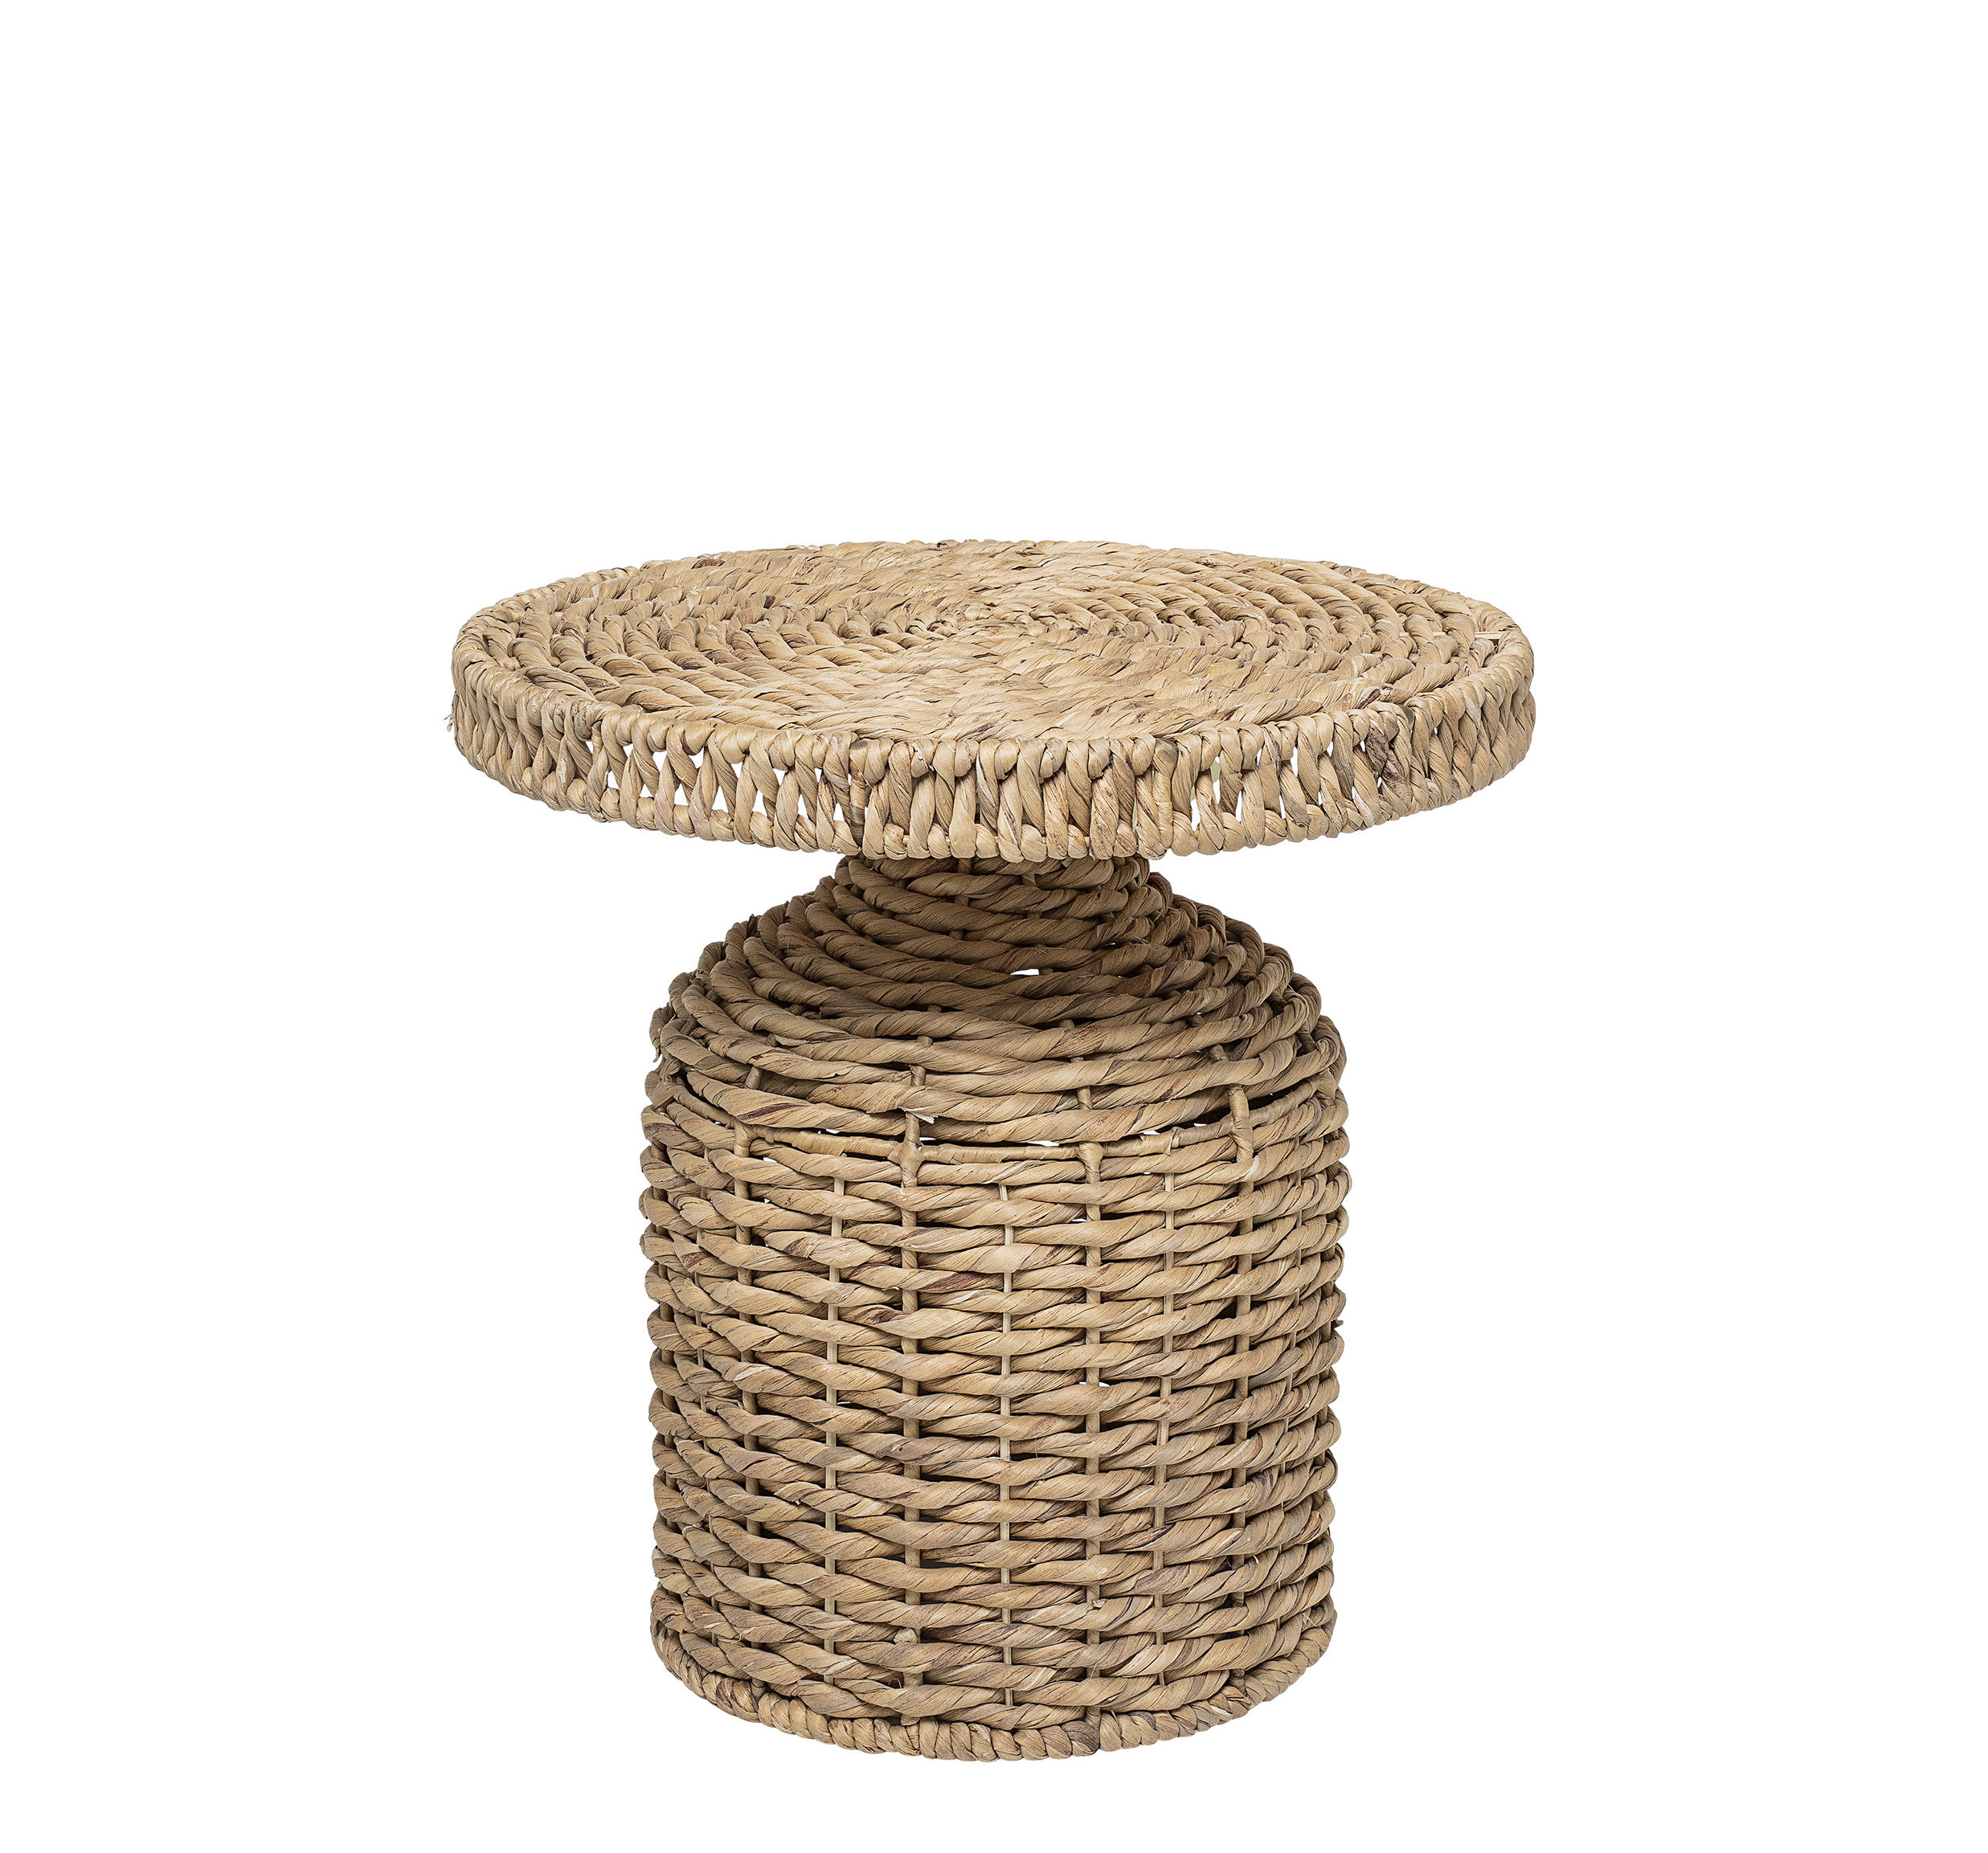 Furniture - Coffee Tables - Camo End table - / Rattan by Bloomingville - Natural - Water hyacinth